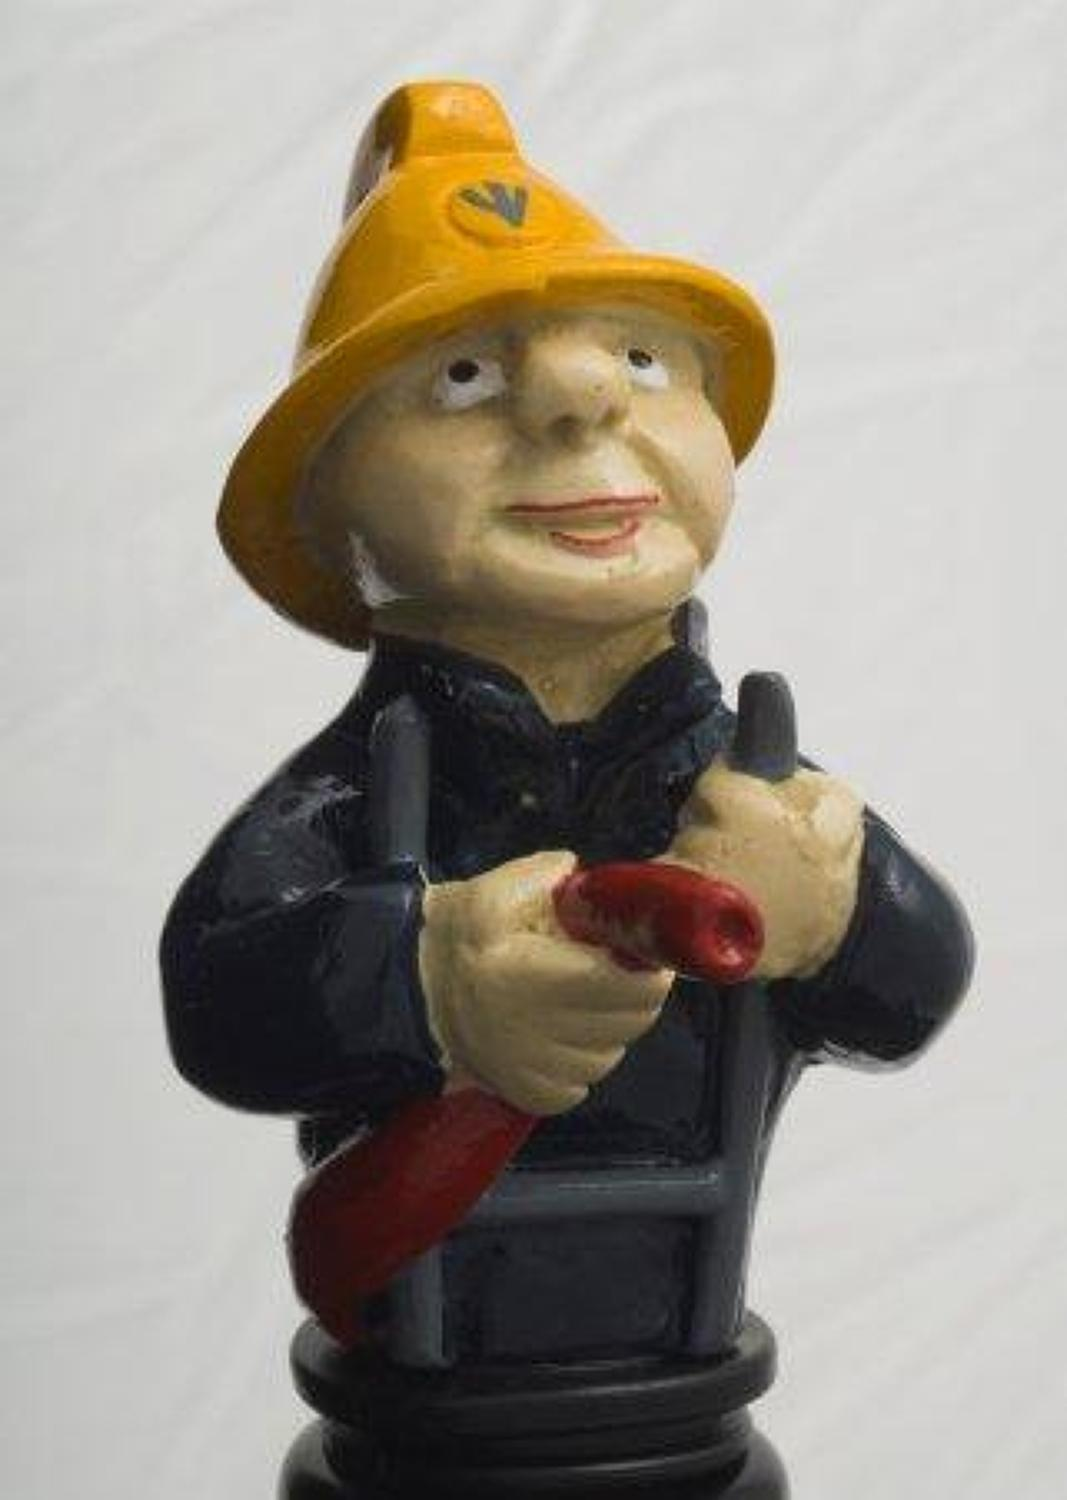 Fireman bottle stopper